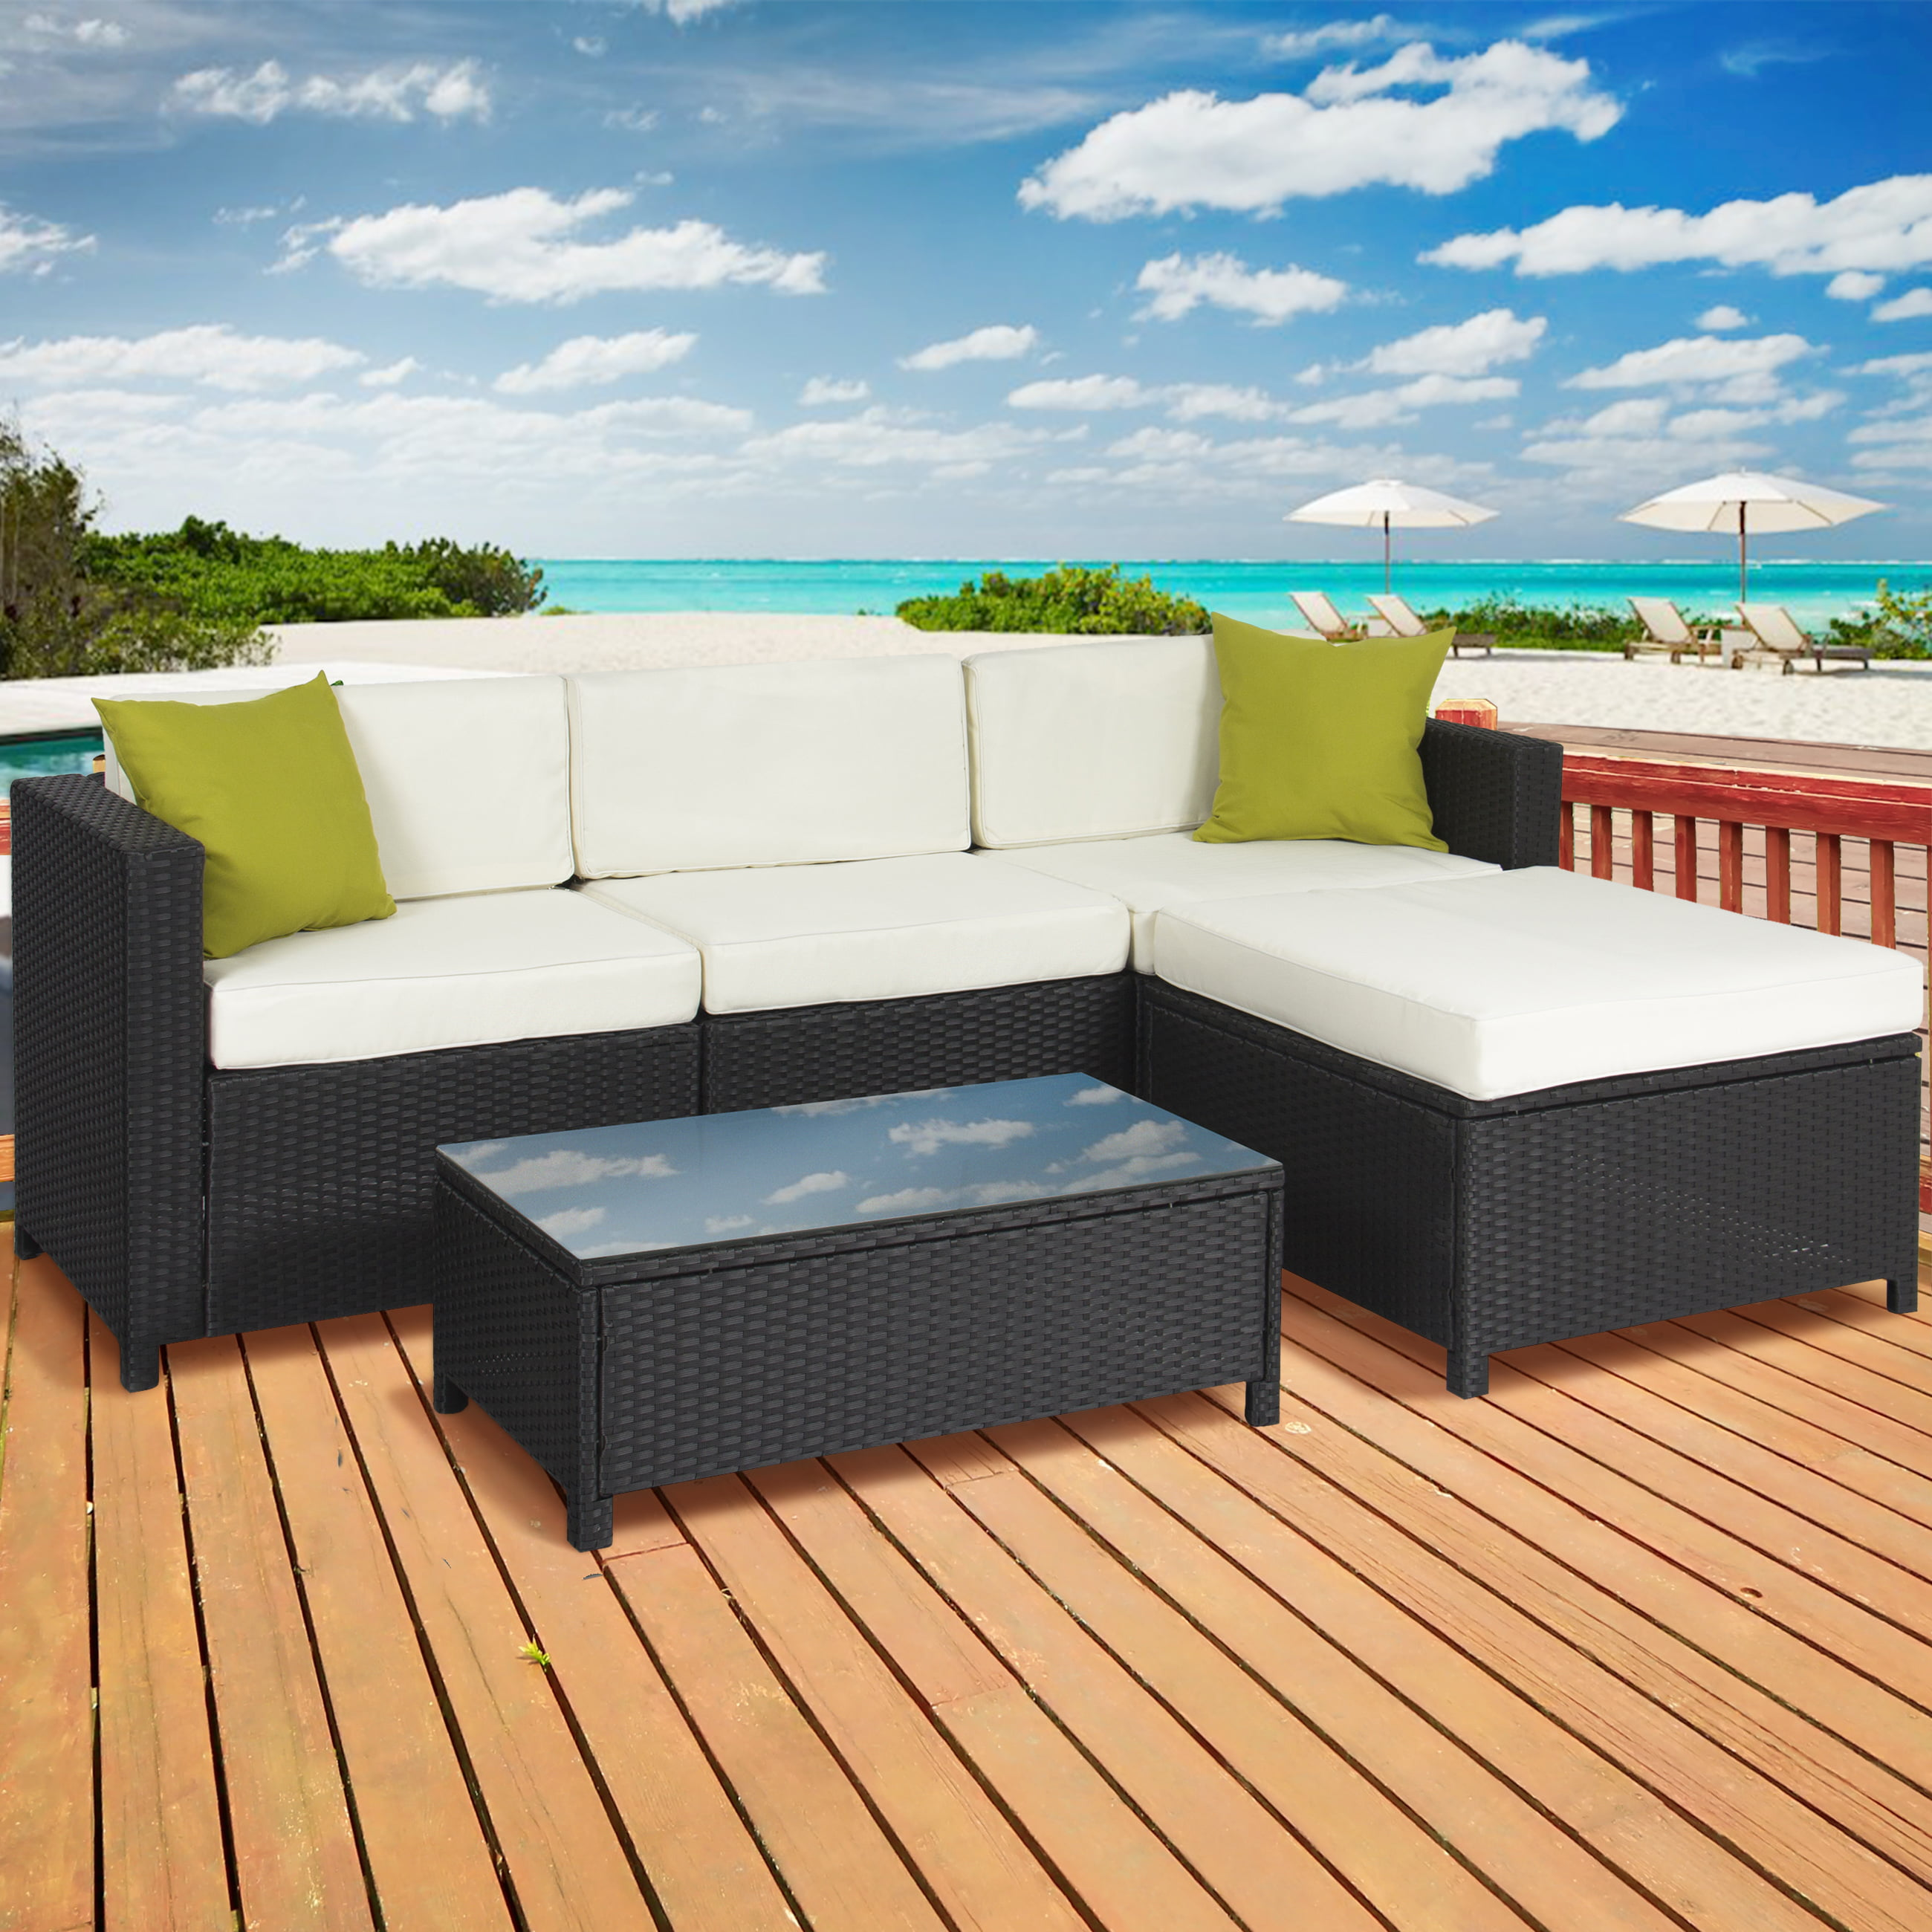 outsunny rattan garden wicker 6 piece sofa sectional patio furniture set walmartcom